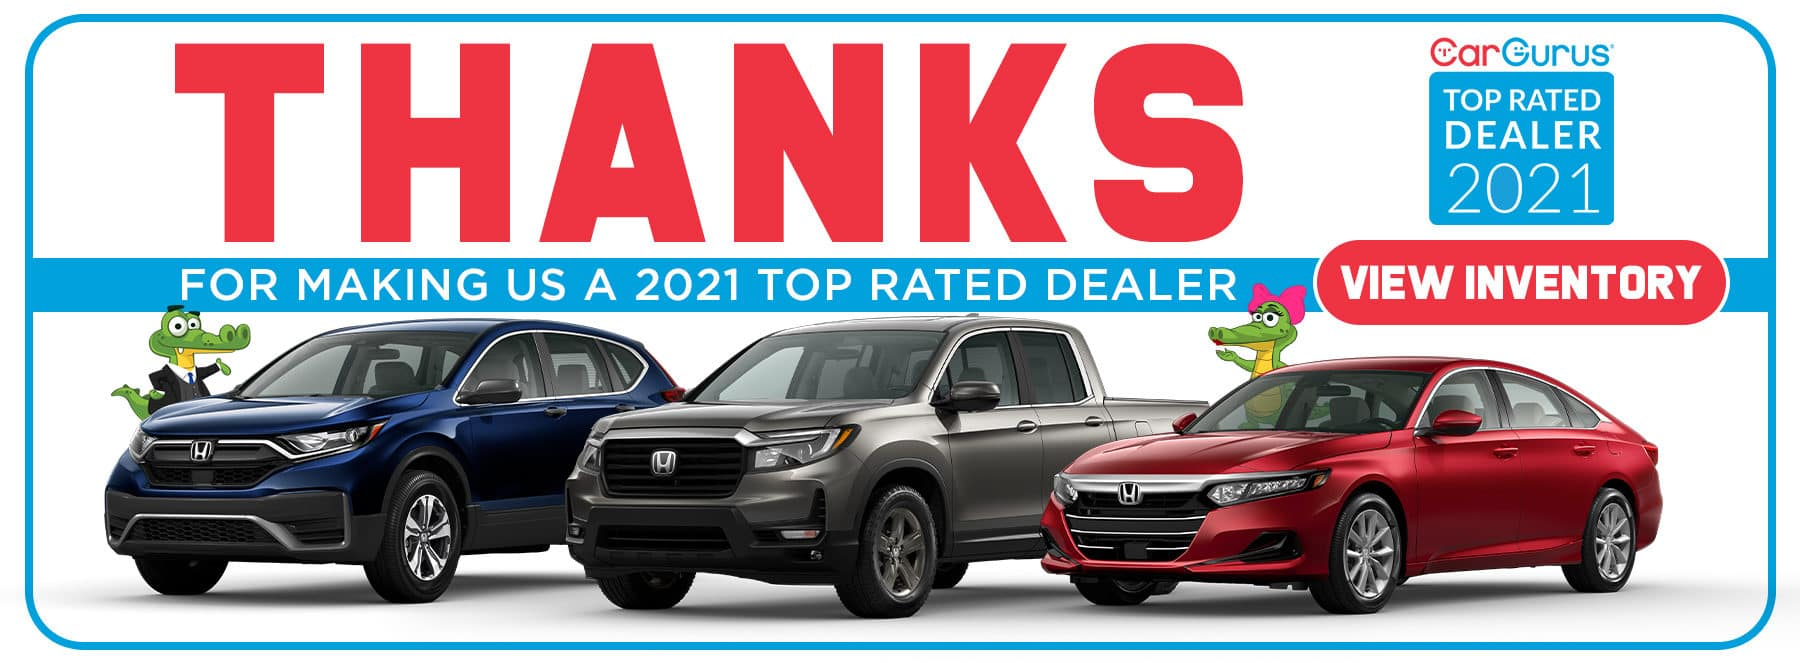 Thank You For Making Us A 2021 Top Rated Dealer - CarGurus